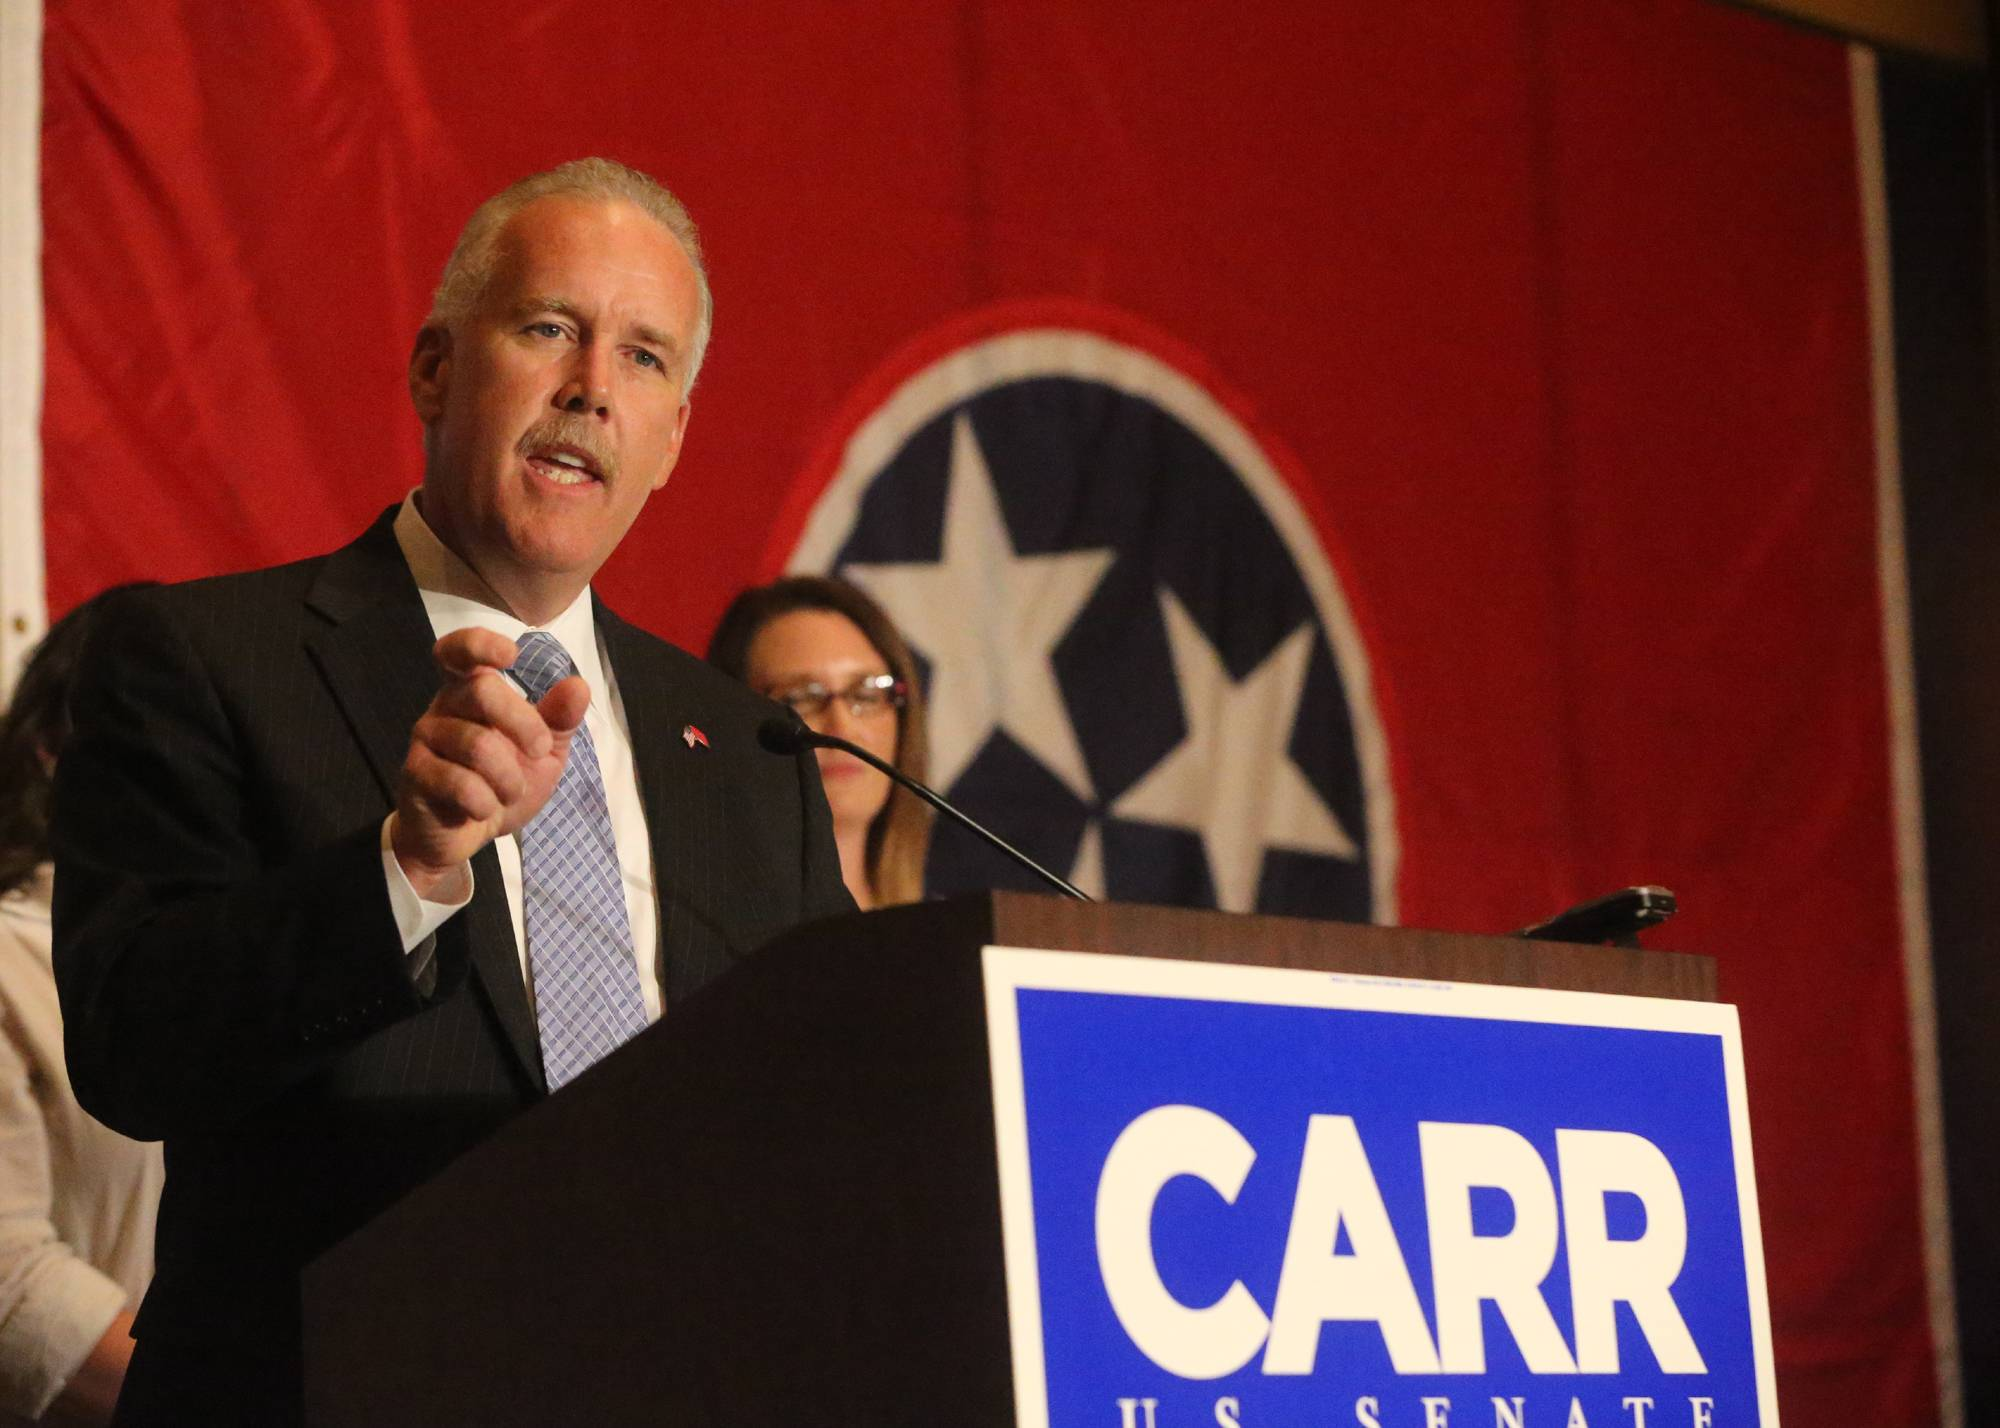 Joe Carr, concedes Thursday in the GOP primary for the U. S. Senate seat to Lamar Alexander at Carr's reception at the Embassy Suites in Murfreesboro, Tennessee on election night.